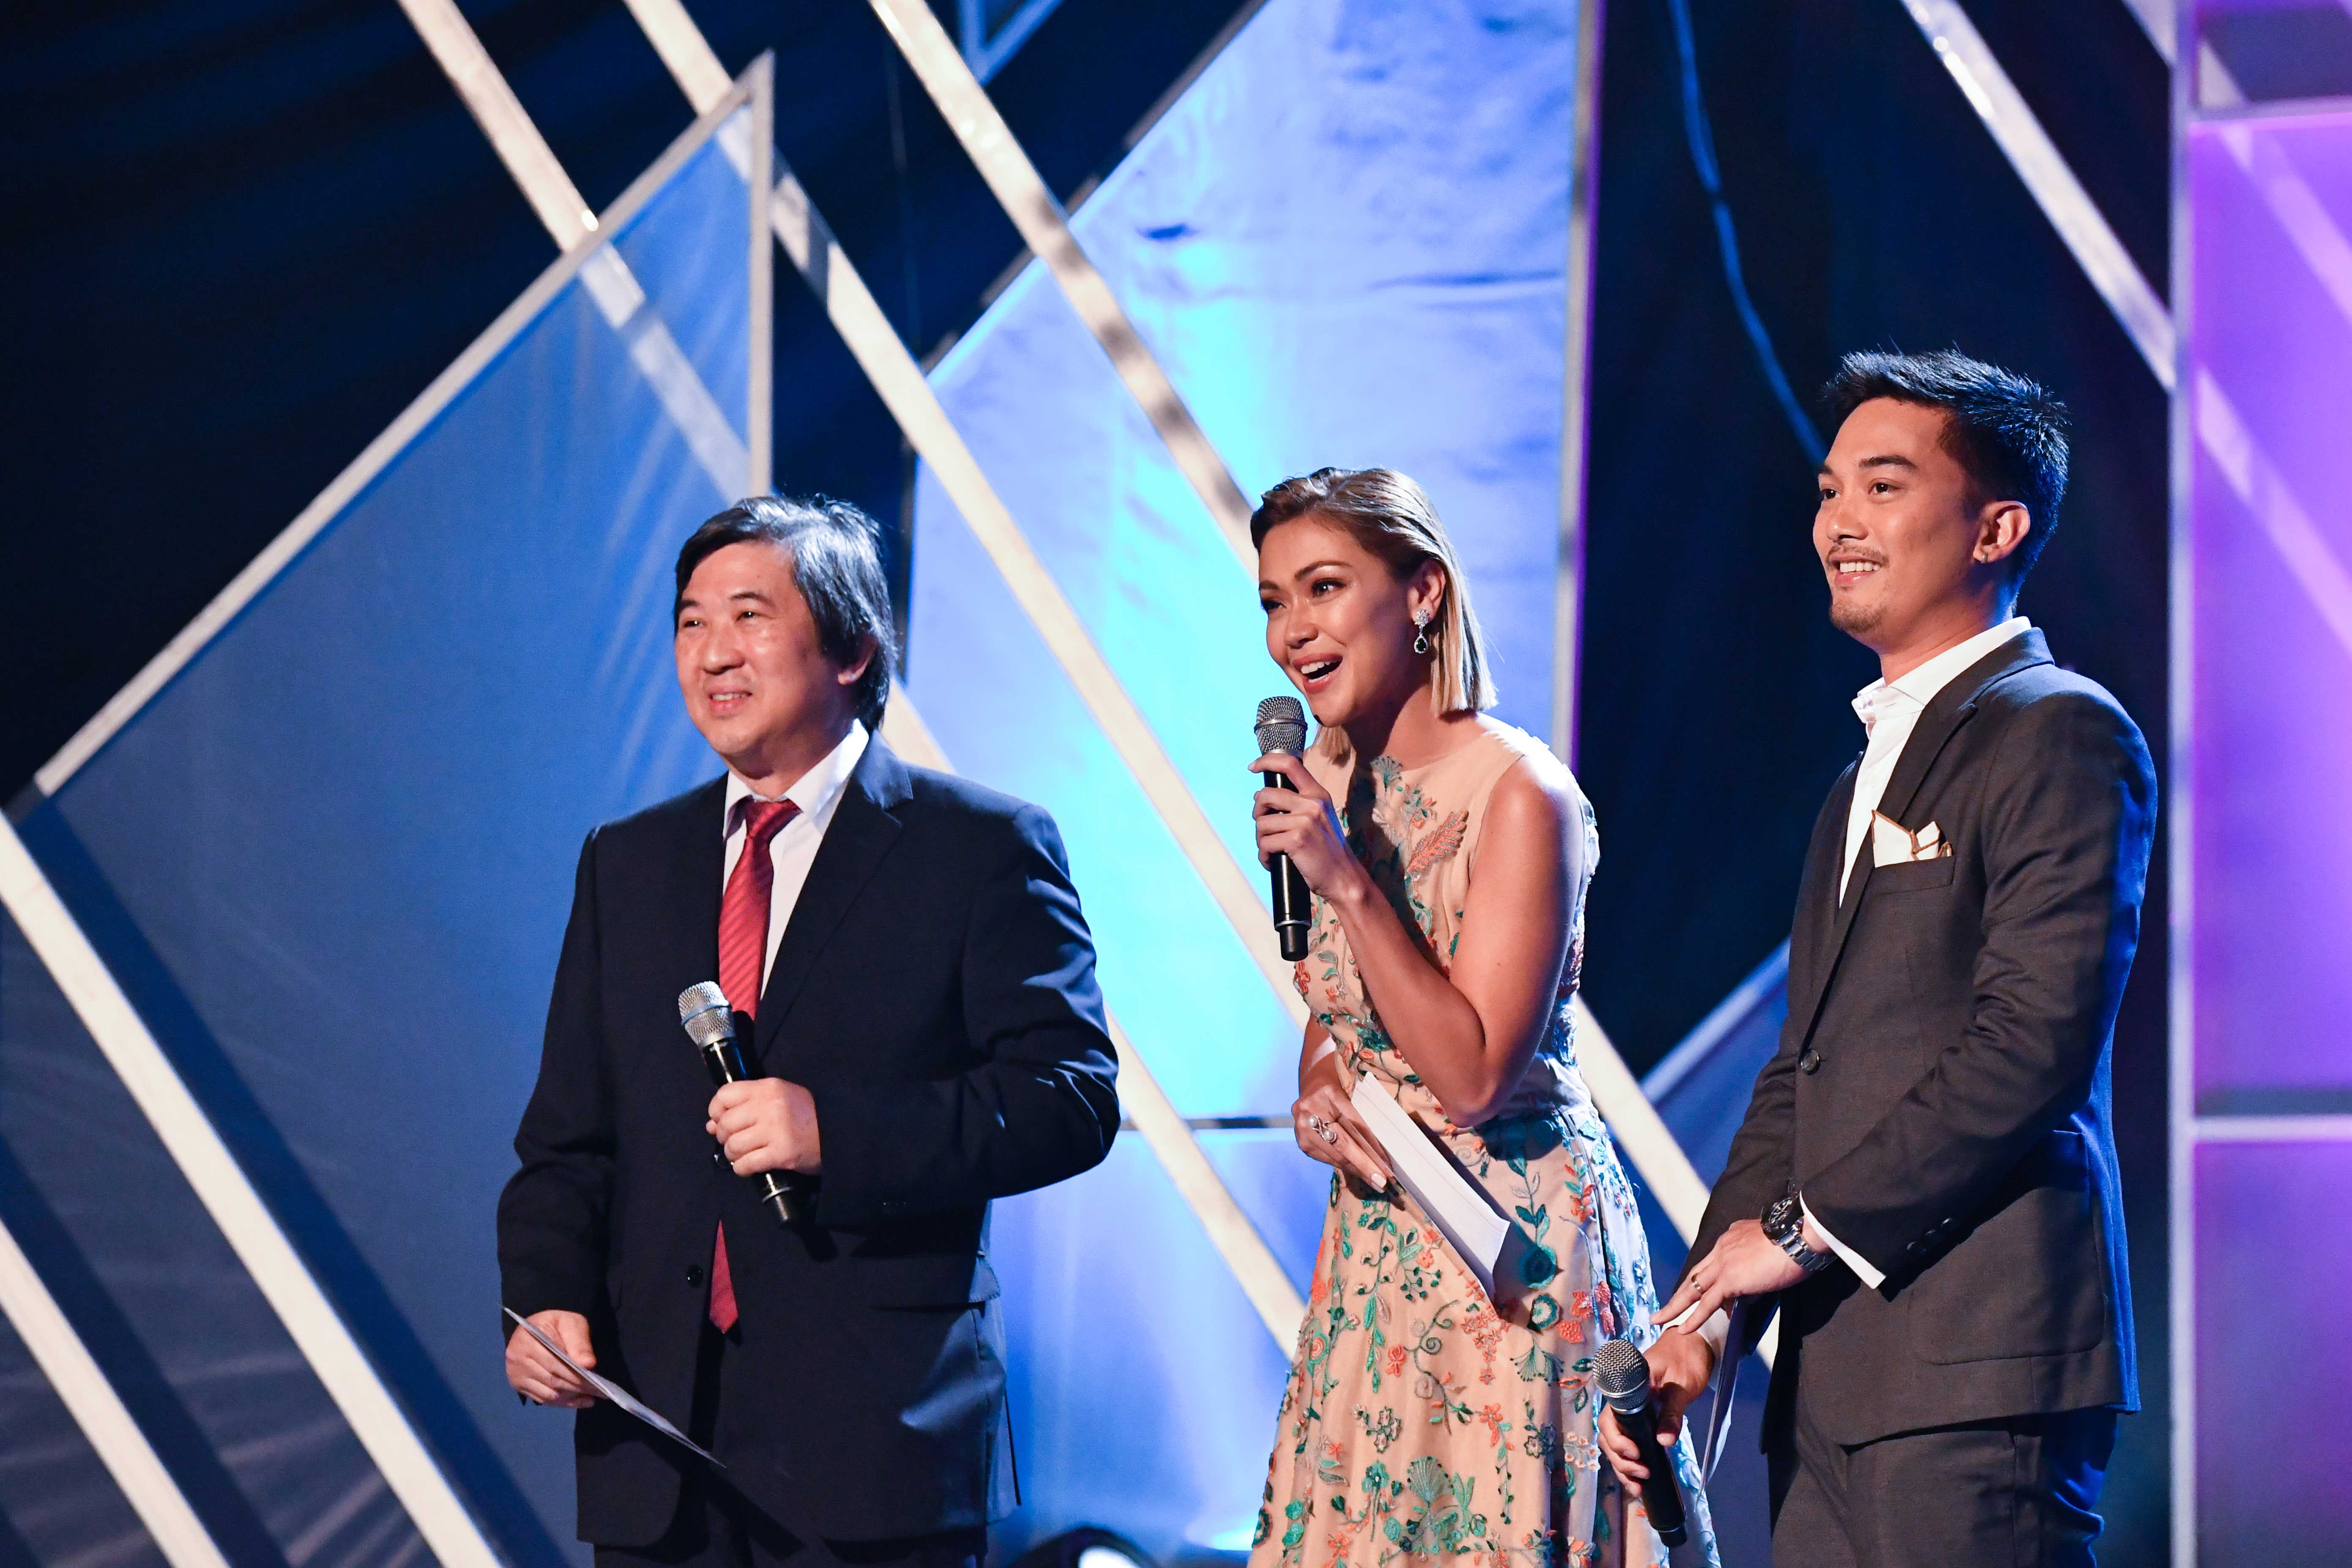 host Cary Lopez shares a light moment with his cohosts, Jodi Santamaria and Miguel Lopez Vargas